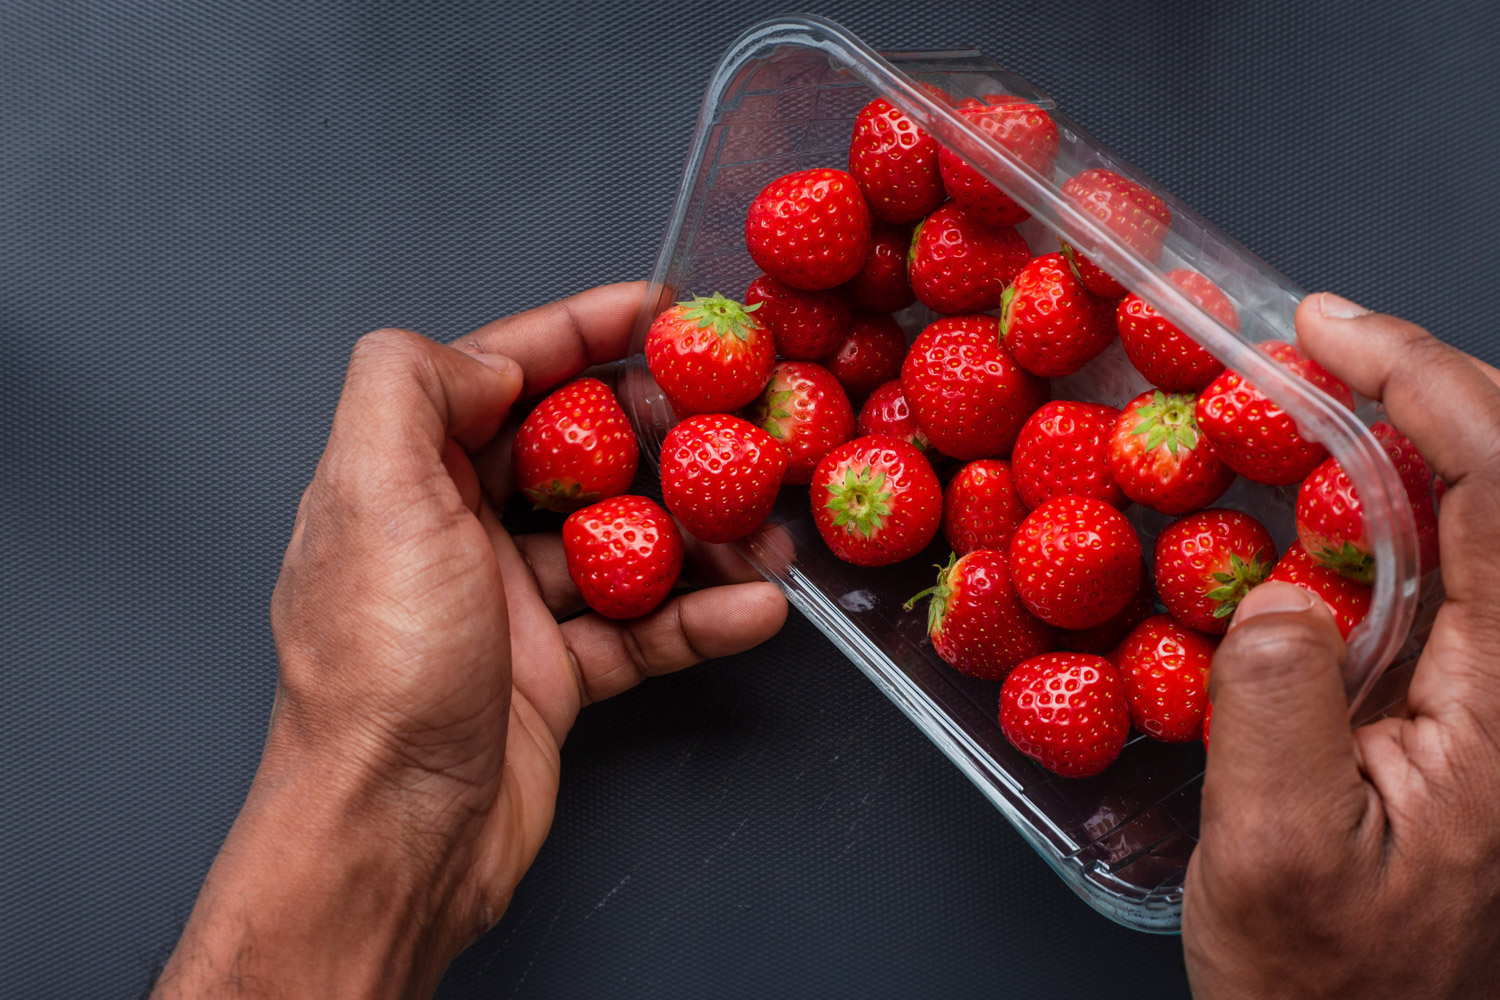 Photo of a person pouring strawberries from the plastic container into their hand.